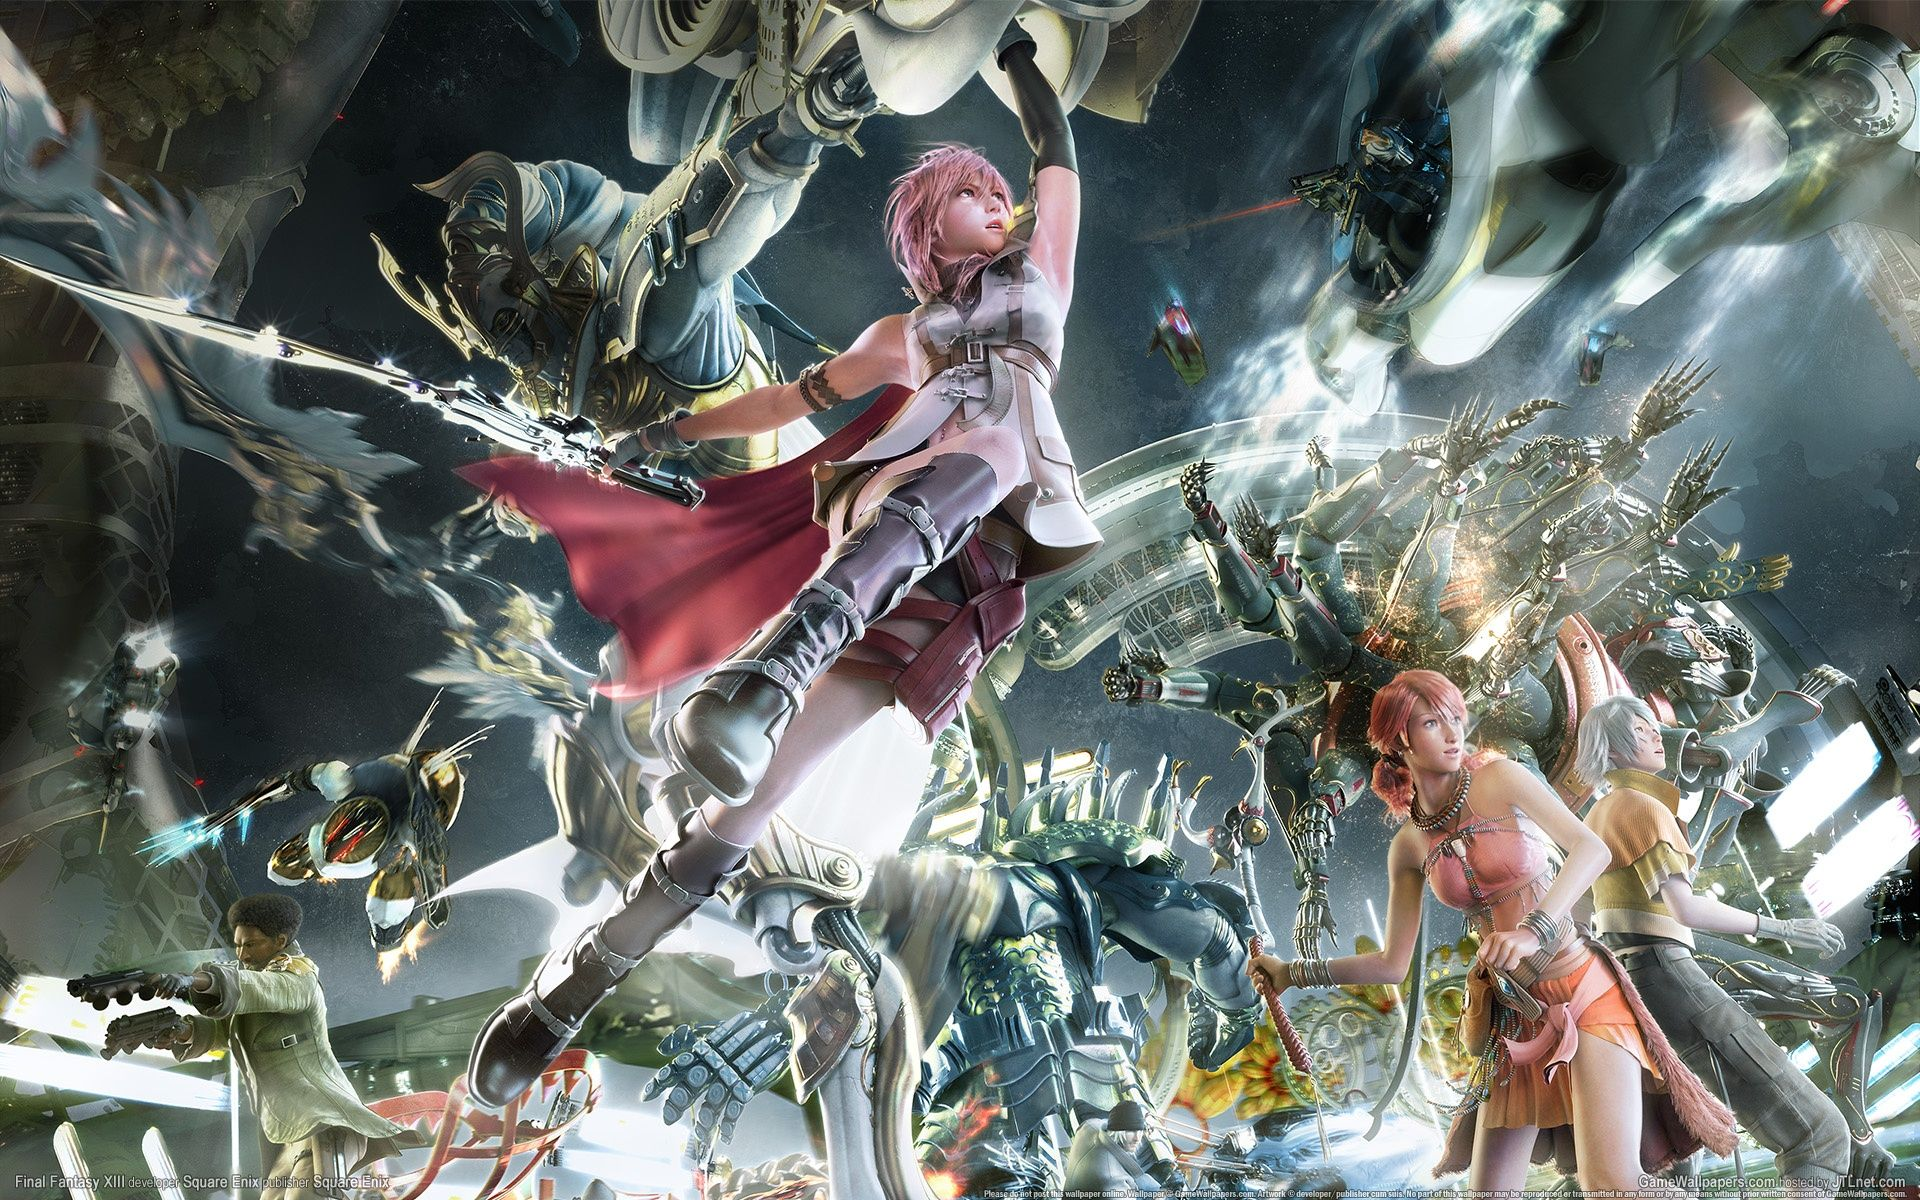 Final Fantasy Xiii Sazh Lightning Snow Vanille Hope